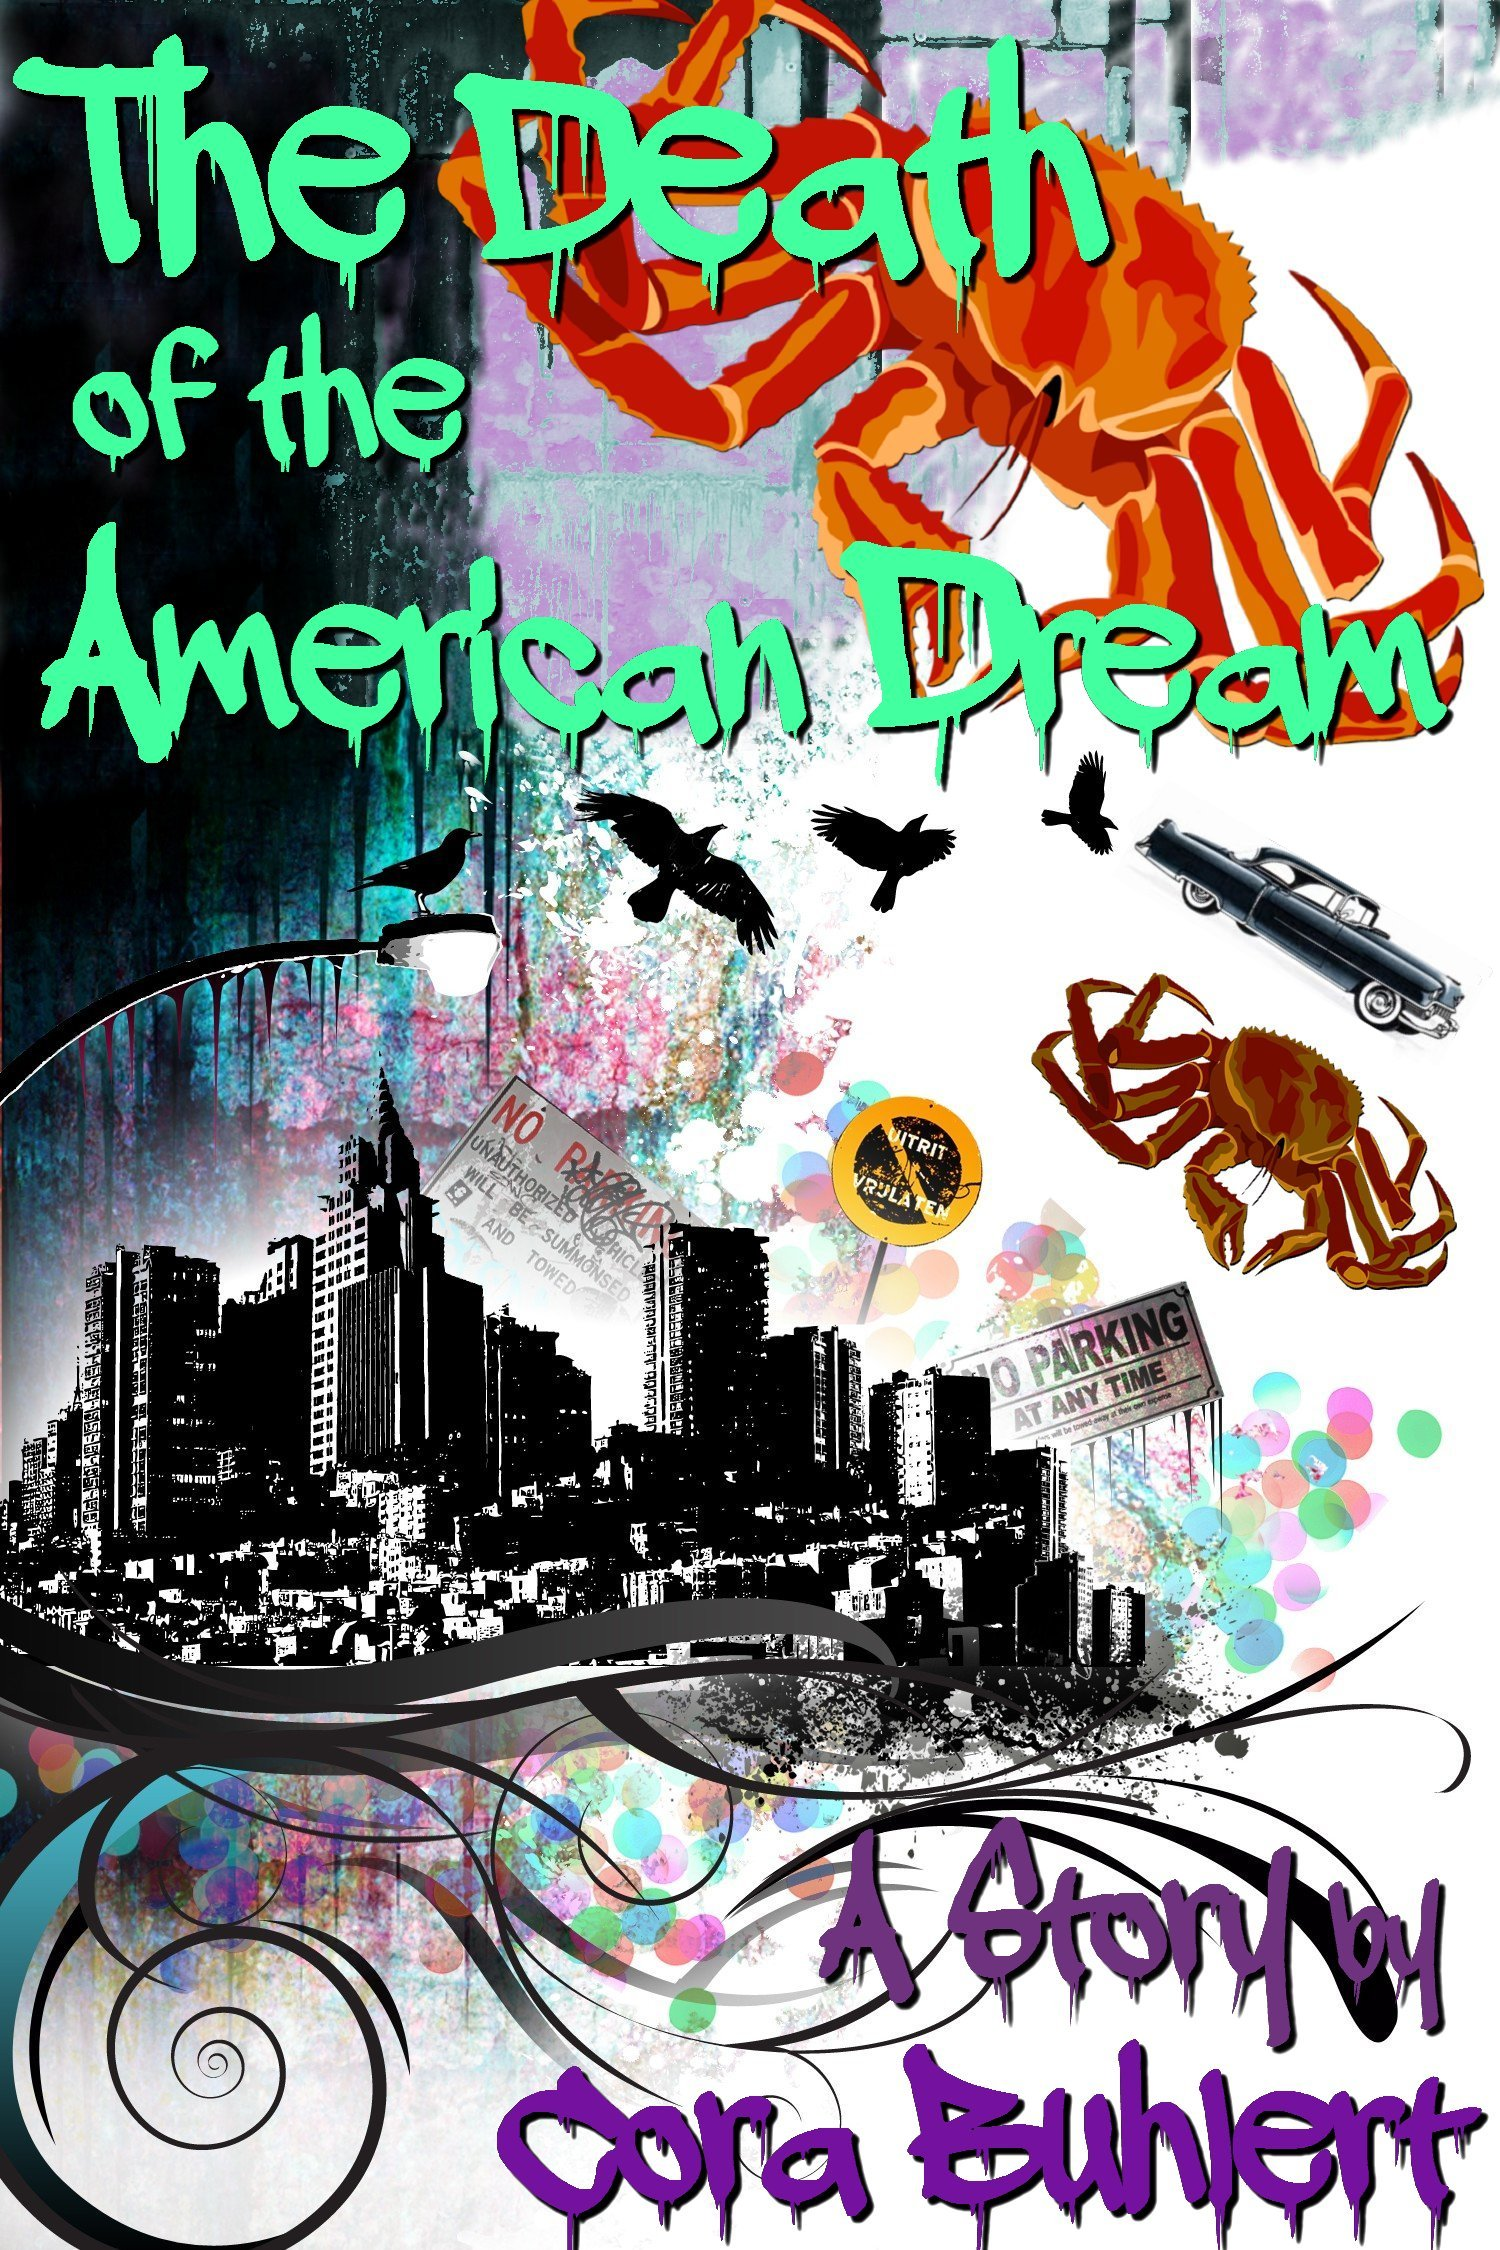 what killed the american dream Donald trump's candidacy began on the same day developers destroyed the most recognizable symbol of the american dream in literature.